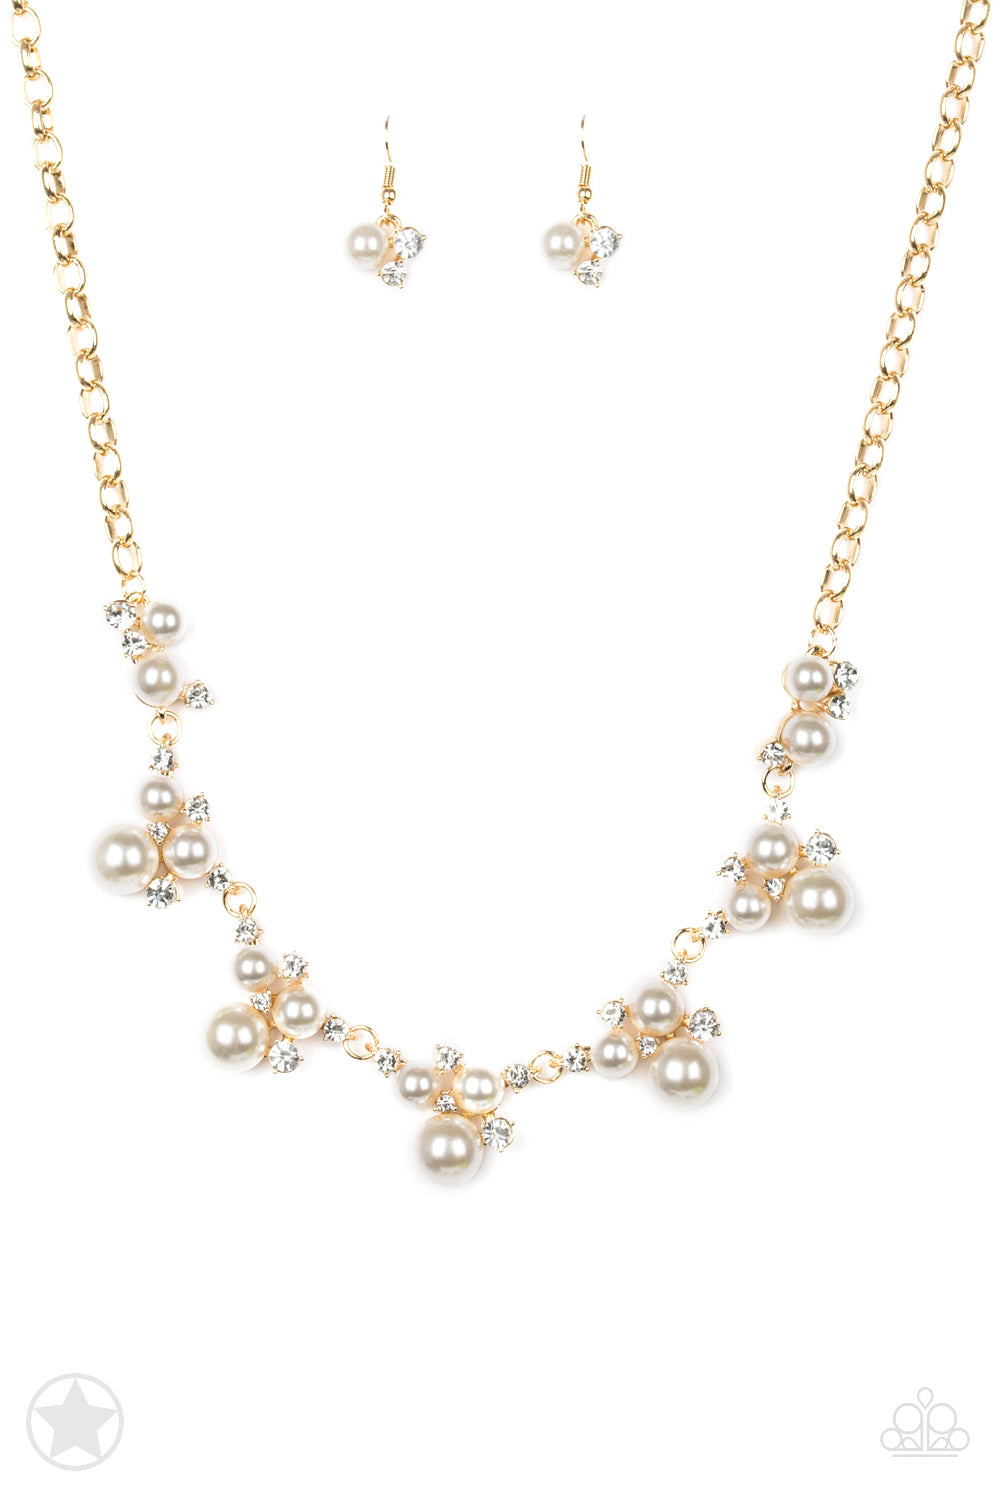 Toast To Perfection Gold/White Necklace